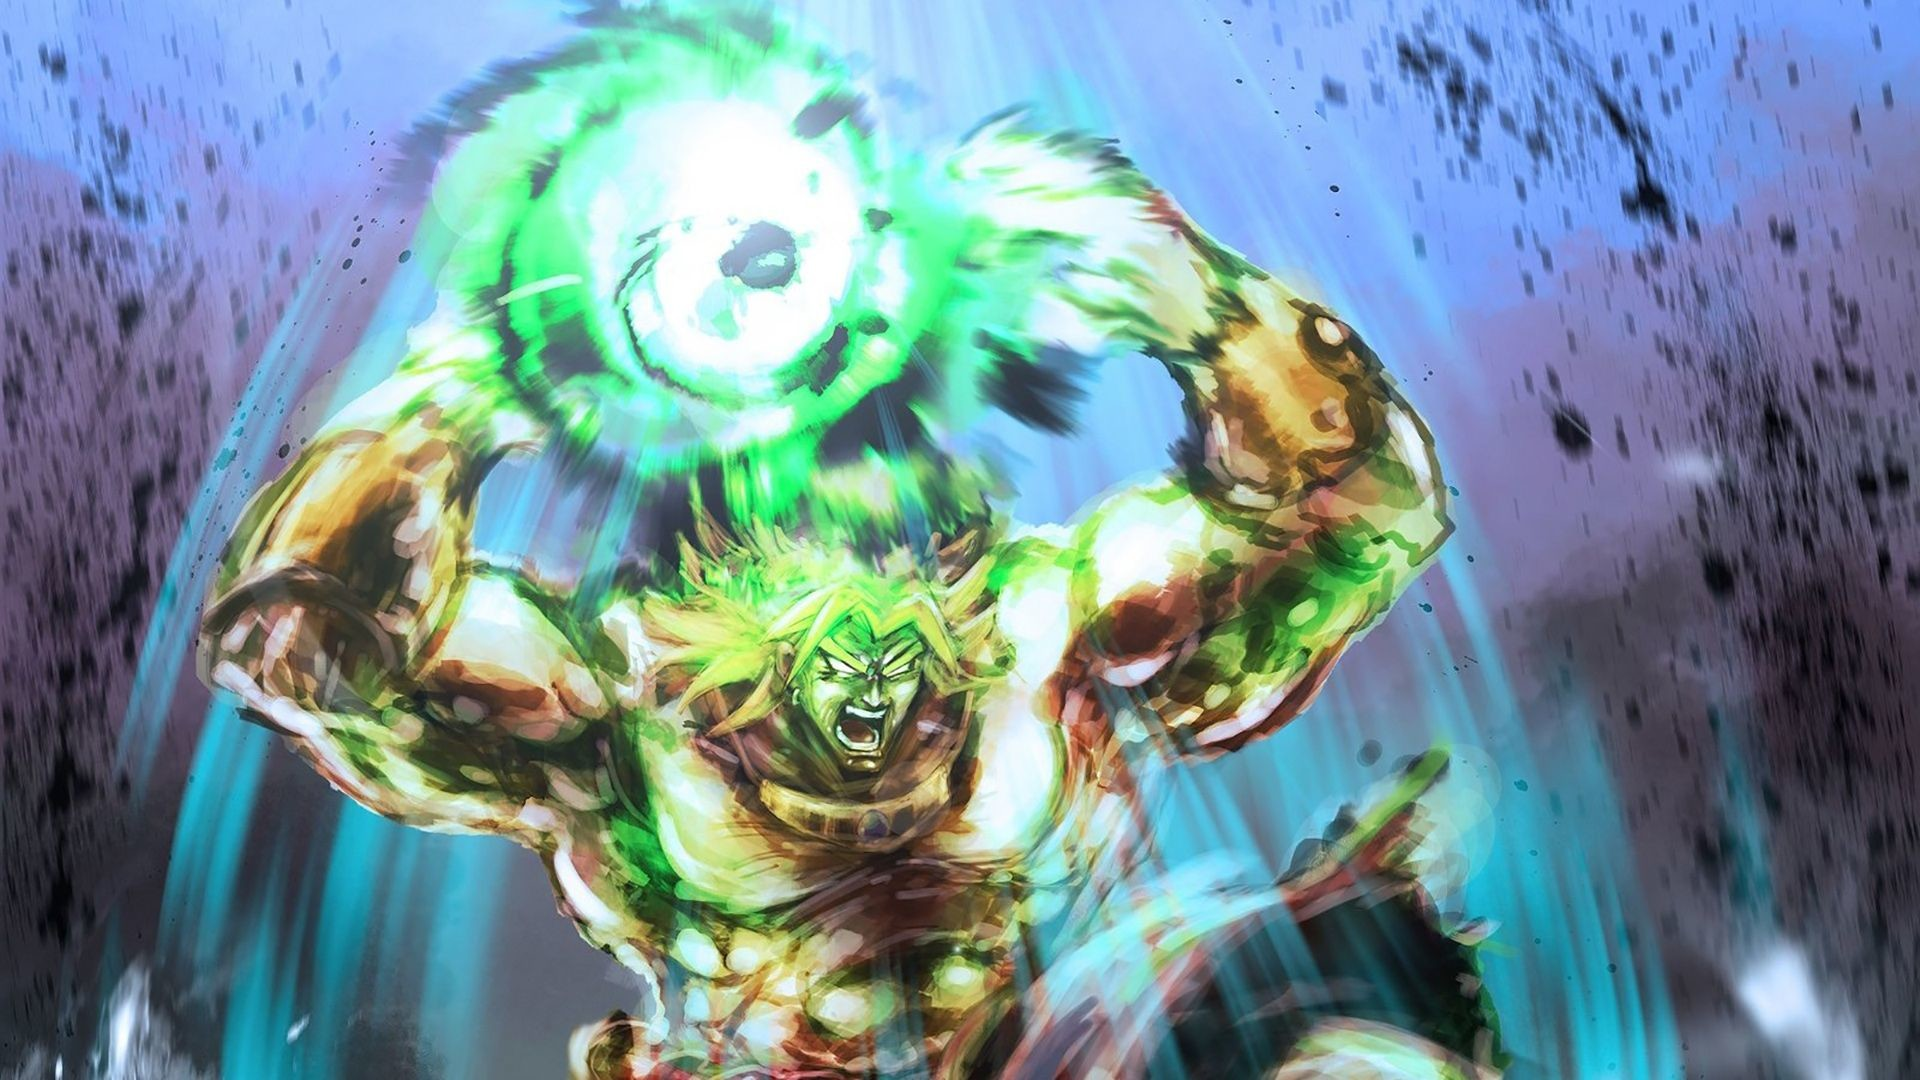 Dbz Broly Wallpaper 64 Images